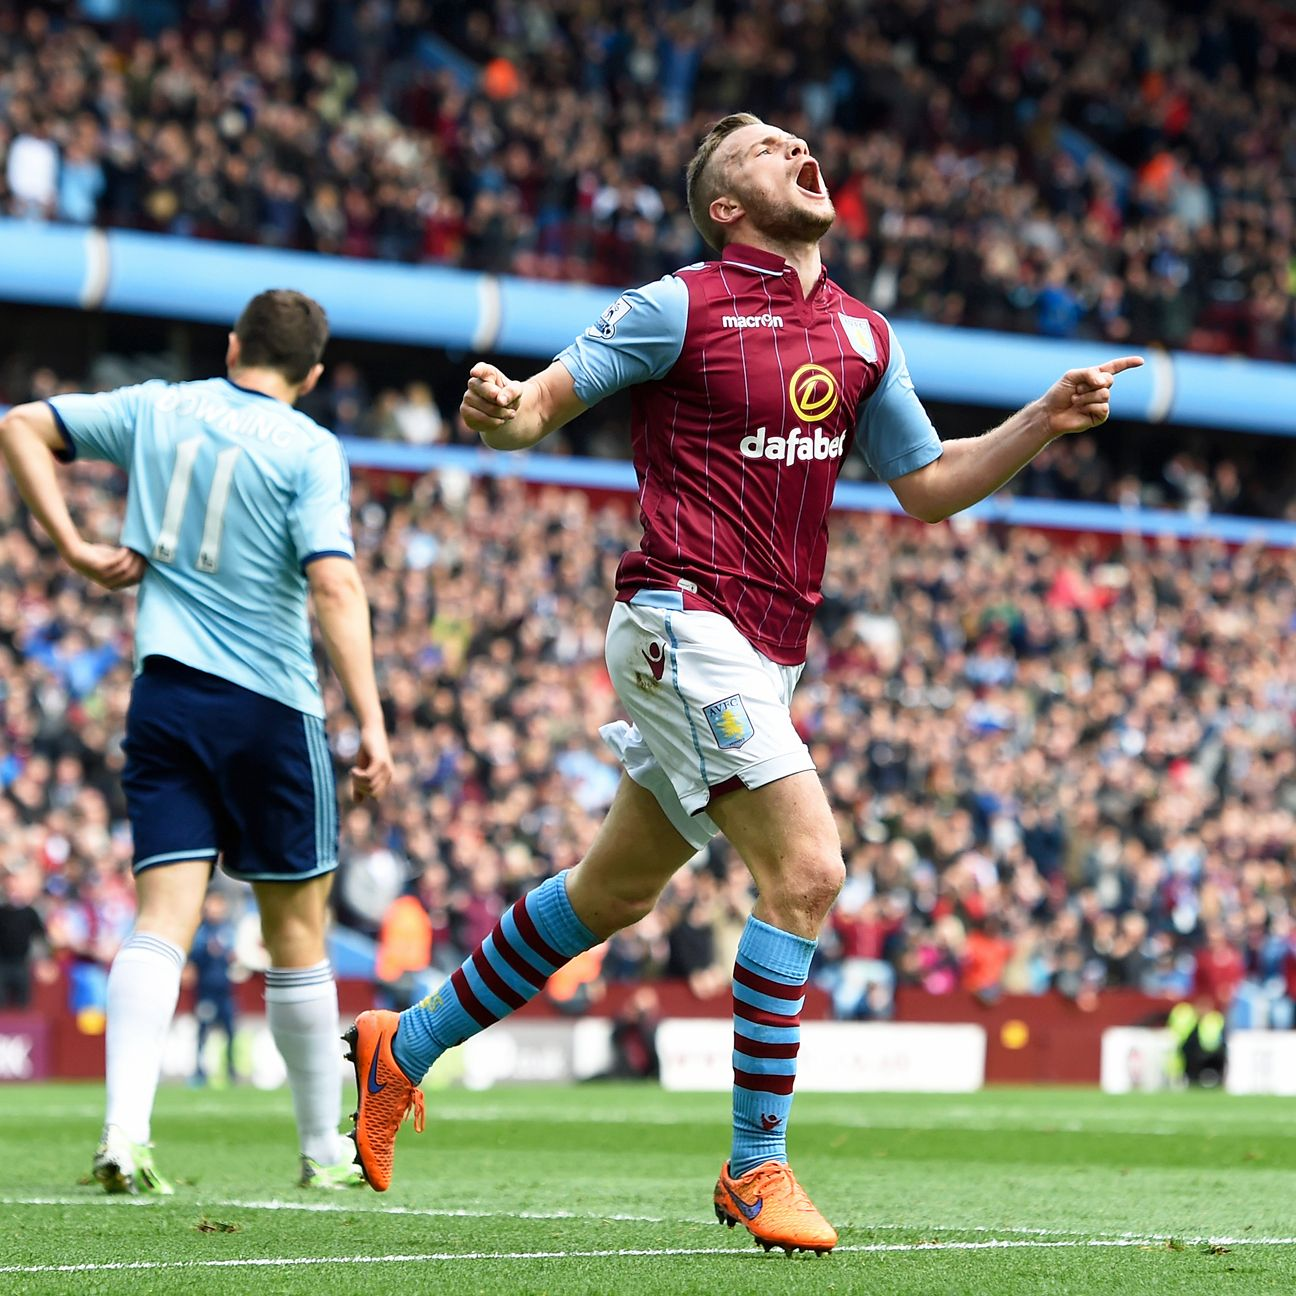 Tom Cleverley started 31 Premier League matches for Aston Villa in 2014-15.